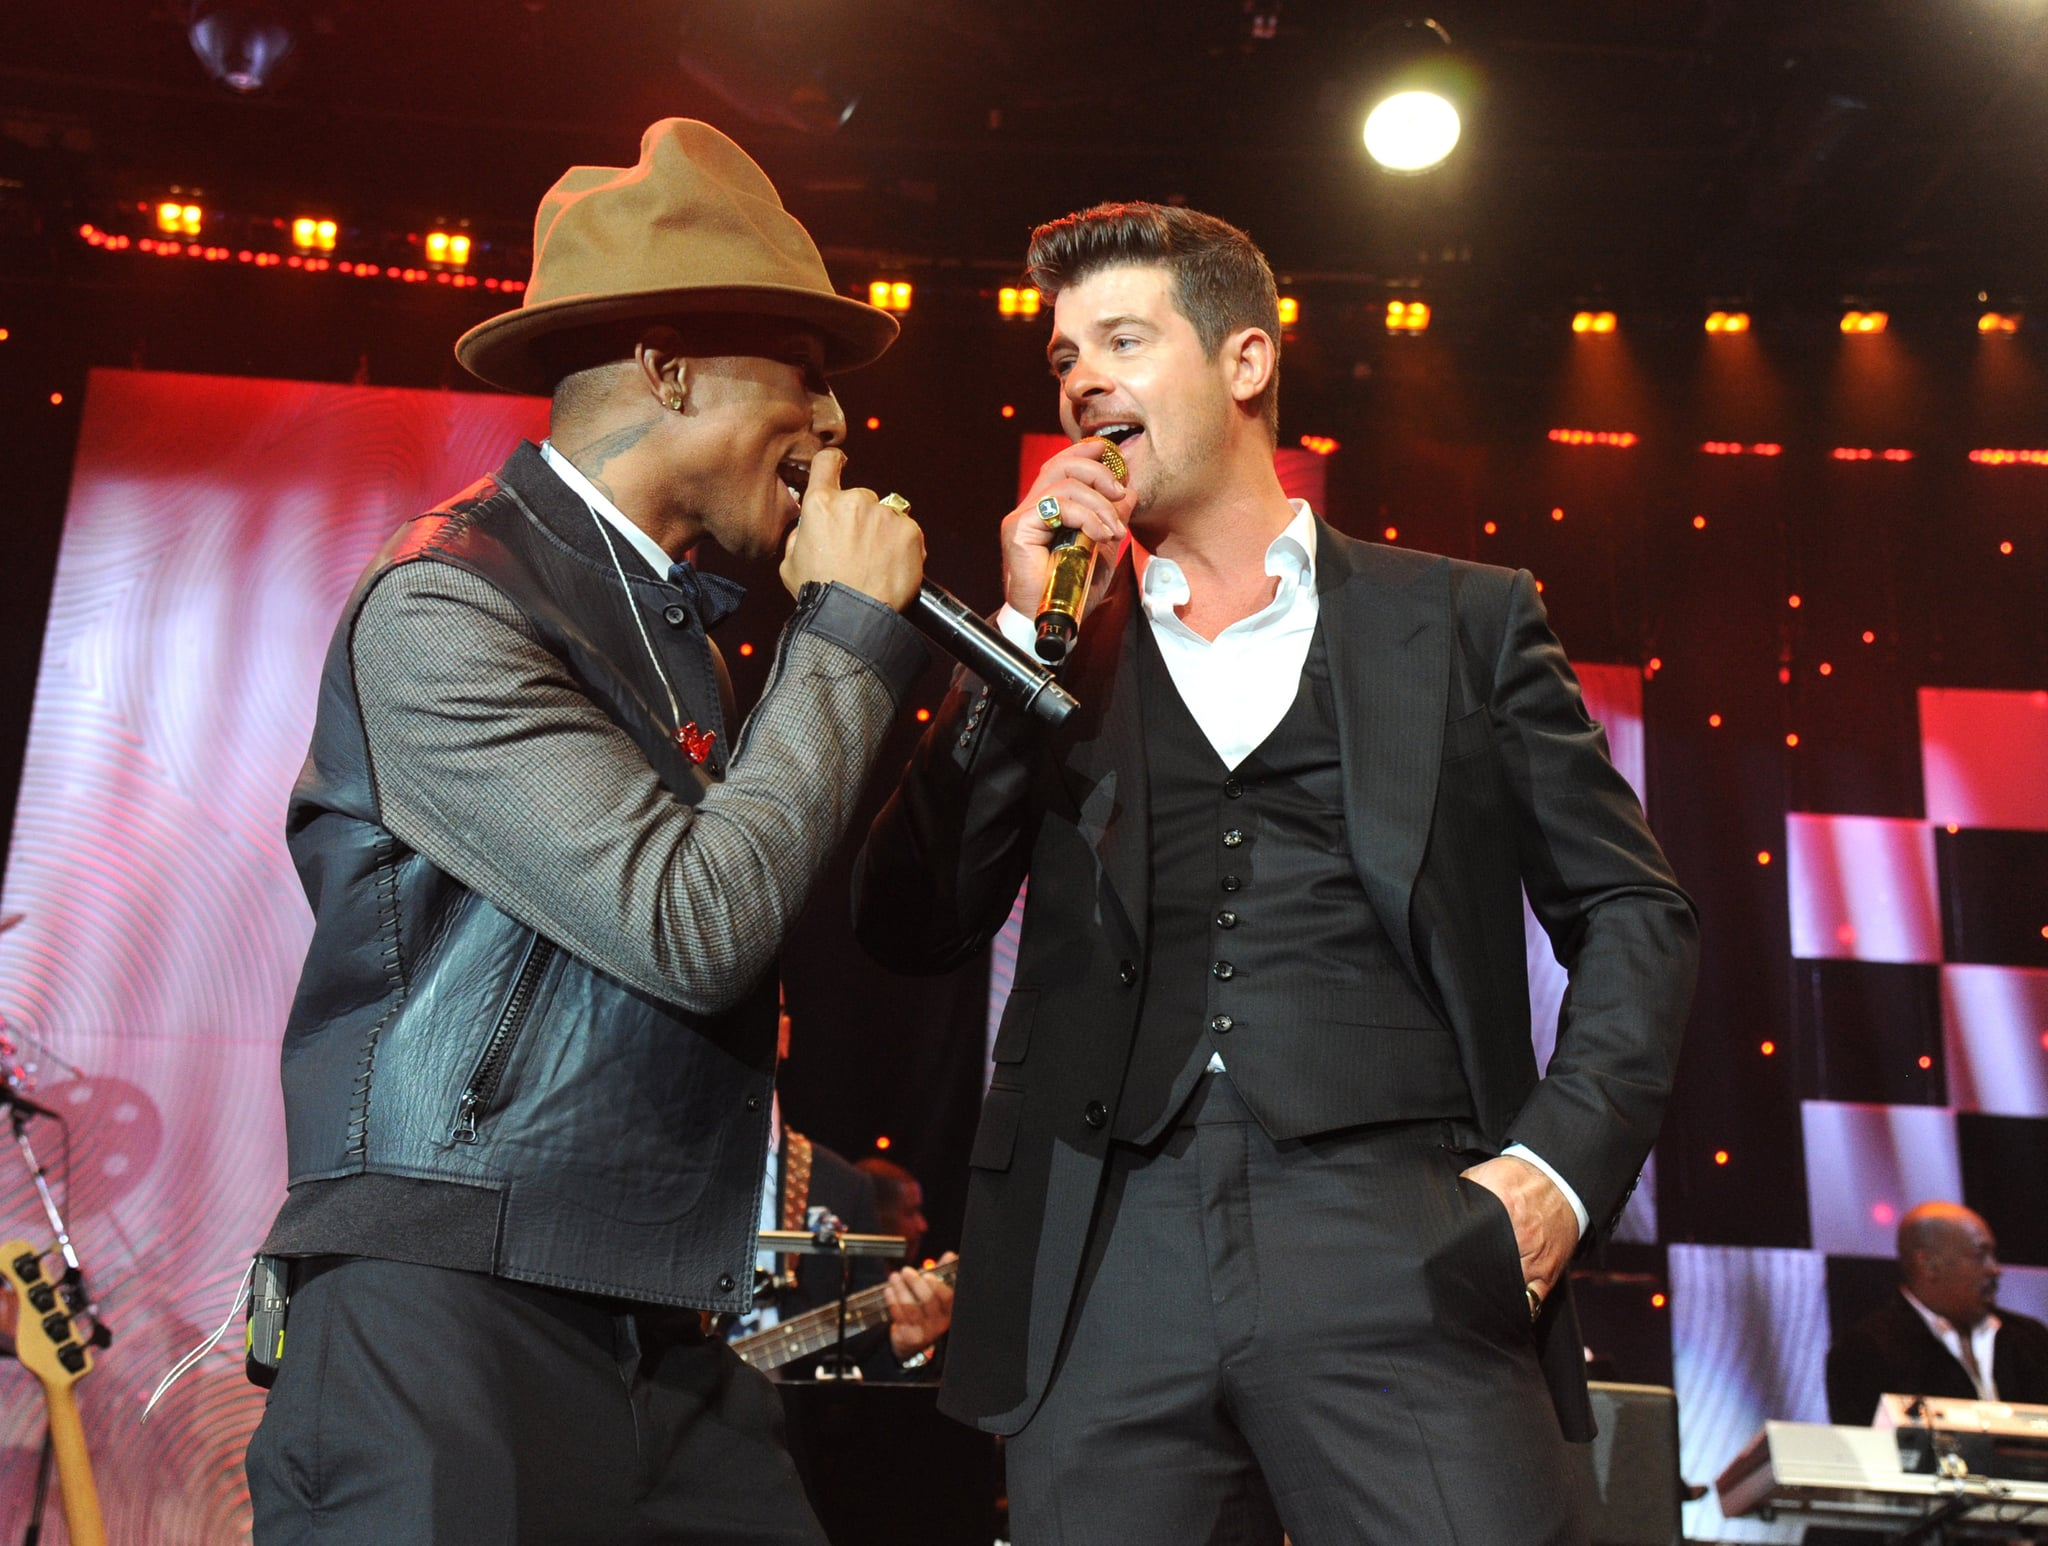 The couple performed on stage with Robin Thicke during a Grammys gala.